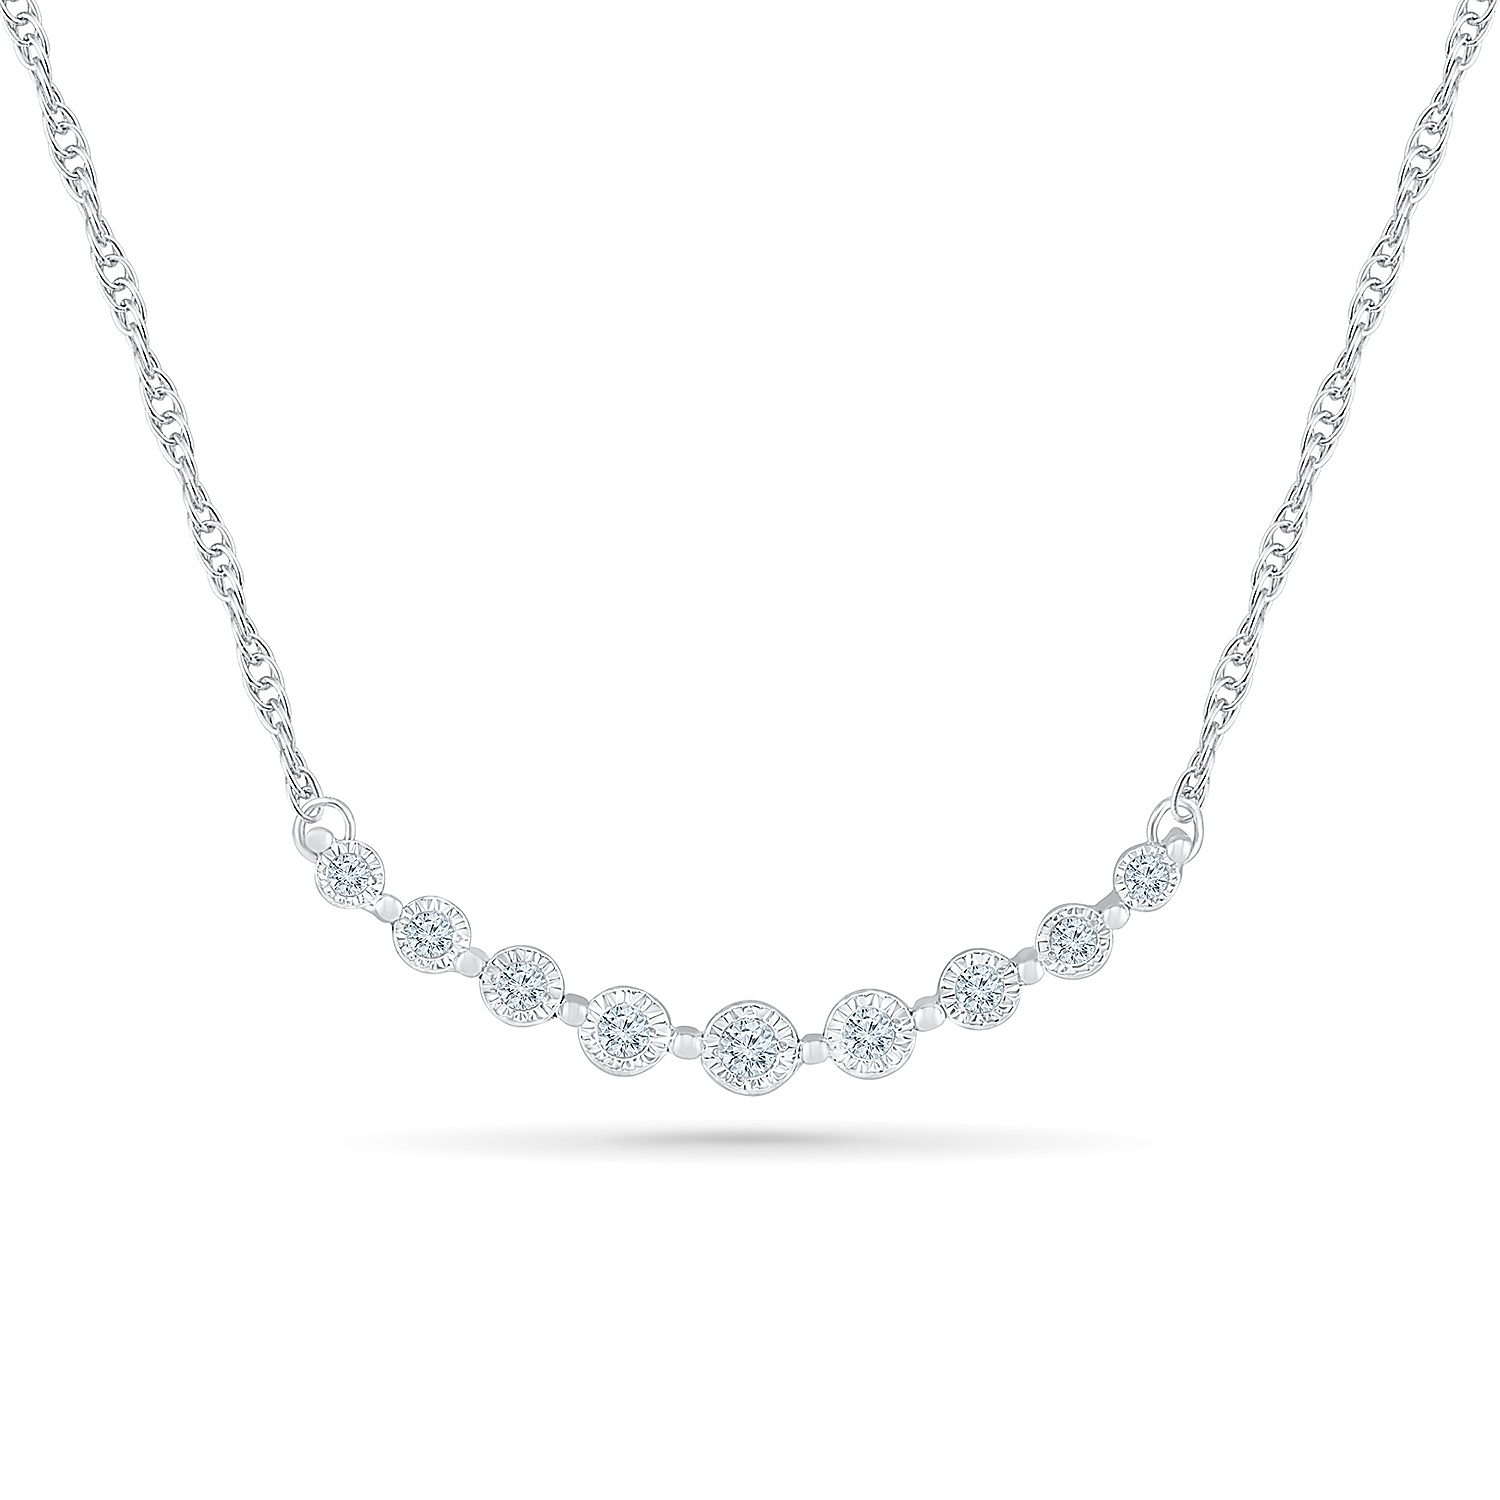 Necklace for woman - 10K white gold & Diamonds T.W. 0.20 Carat